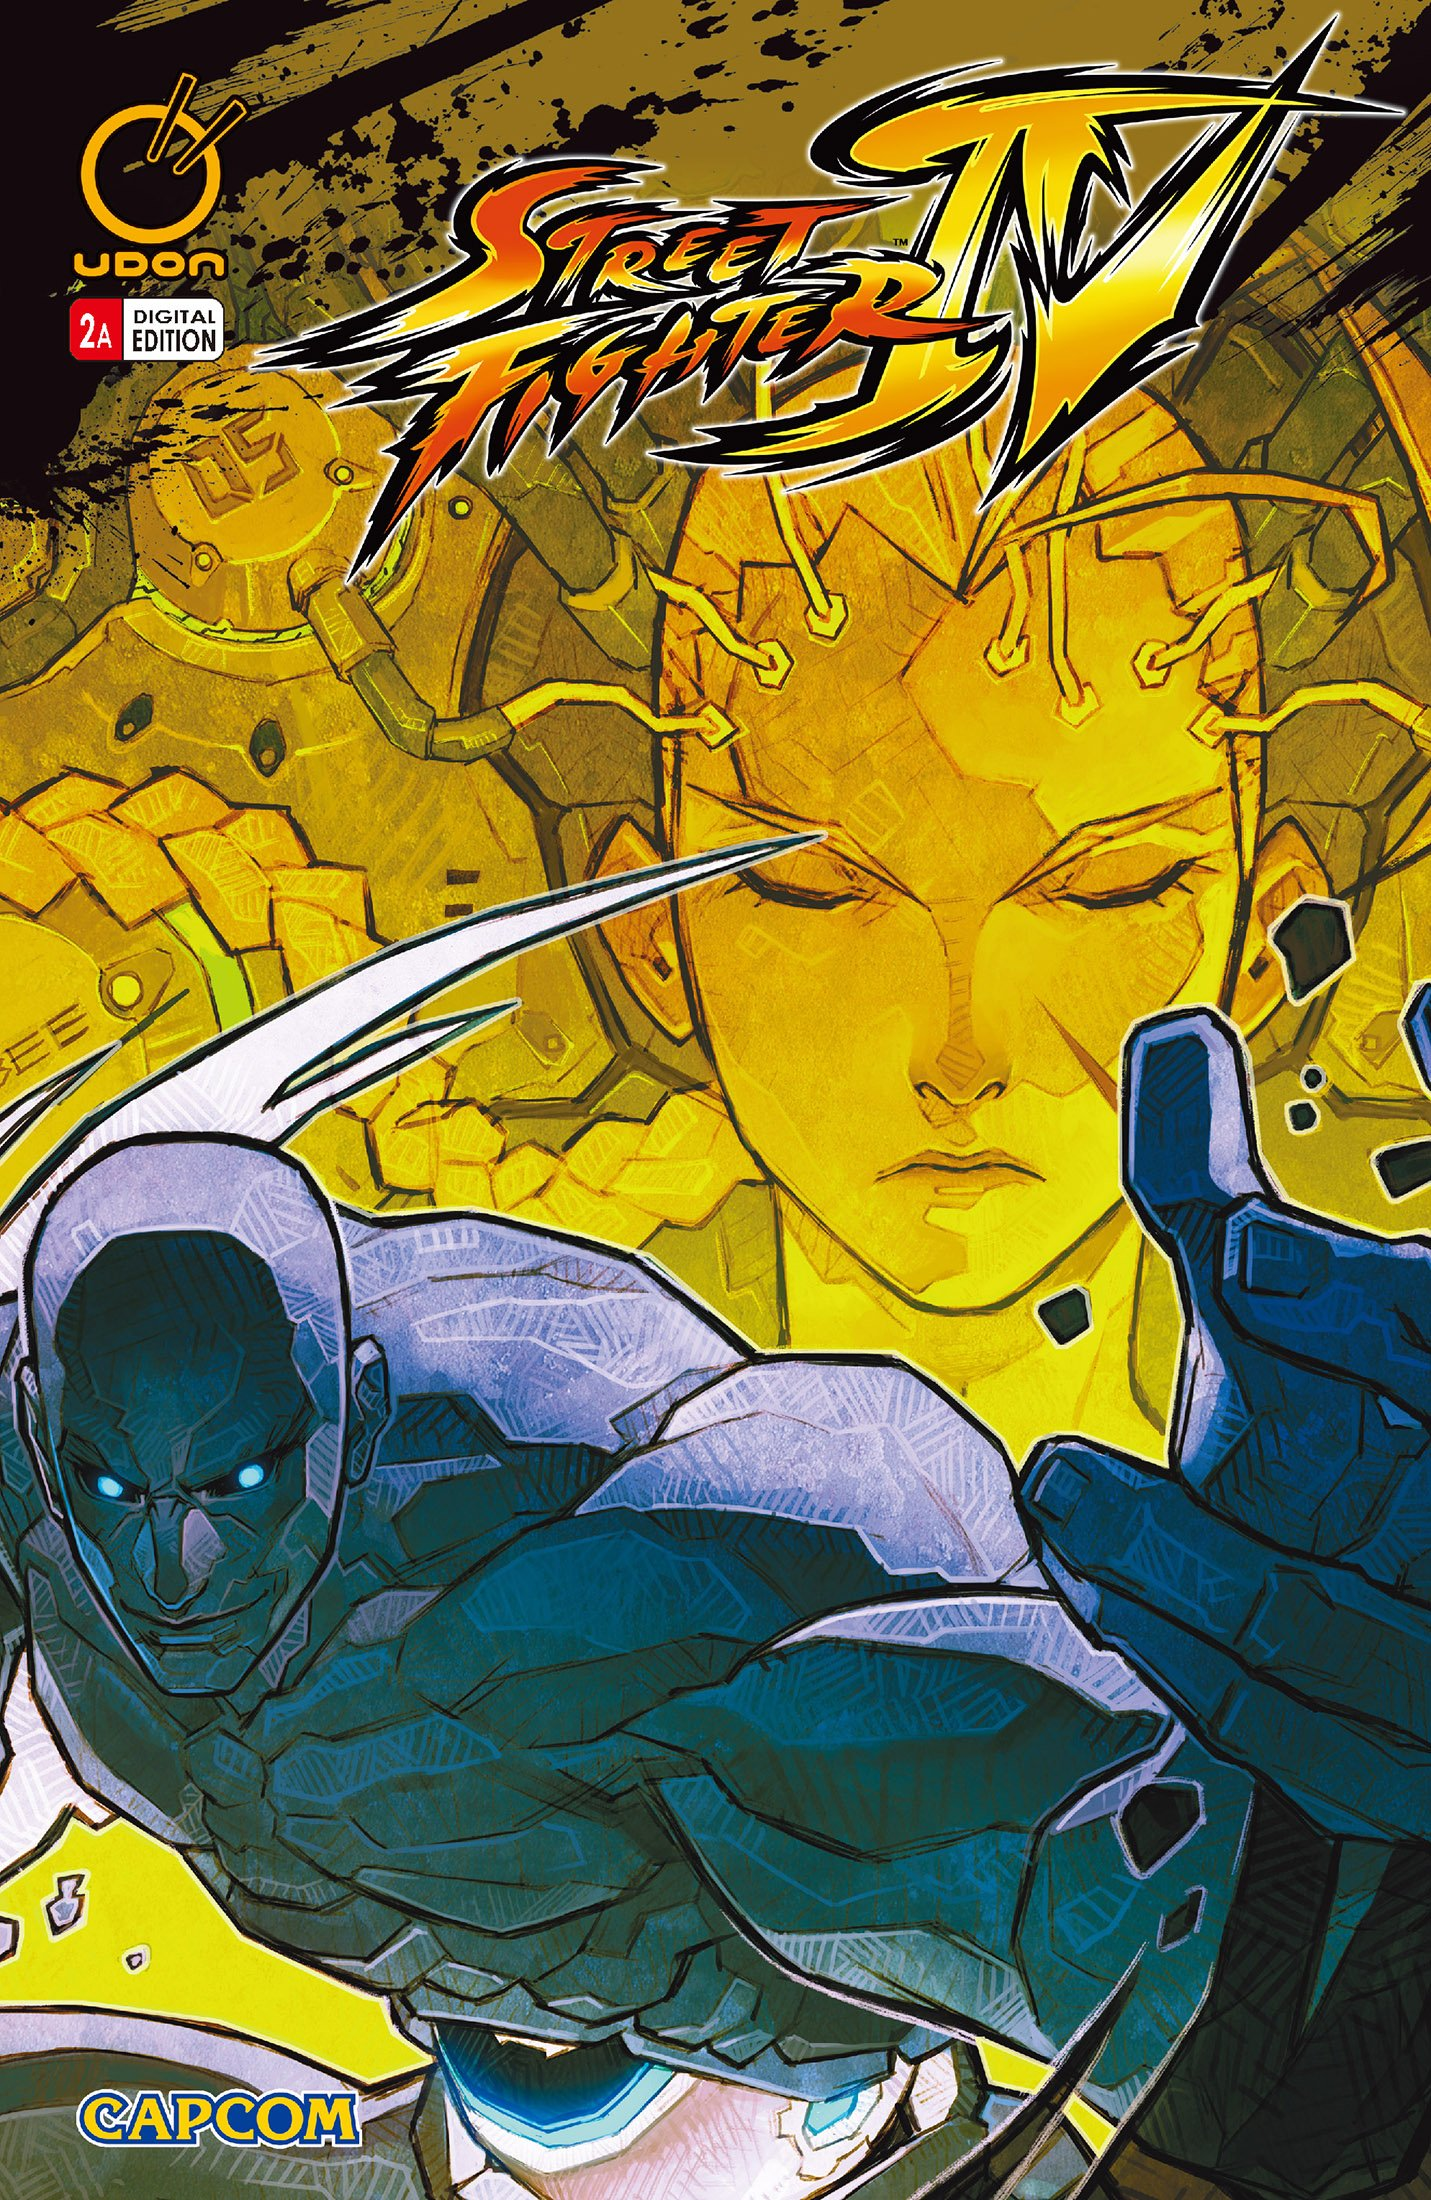 Street Fighter IV 002 (April 2009) (cover a)